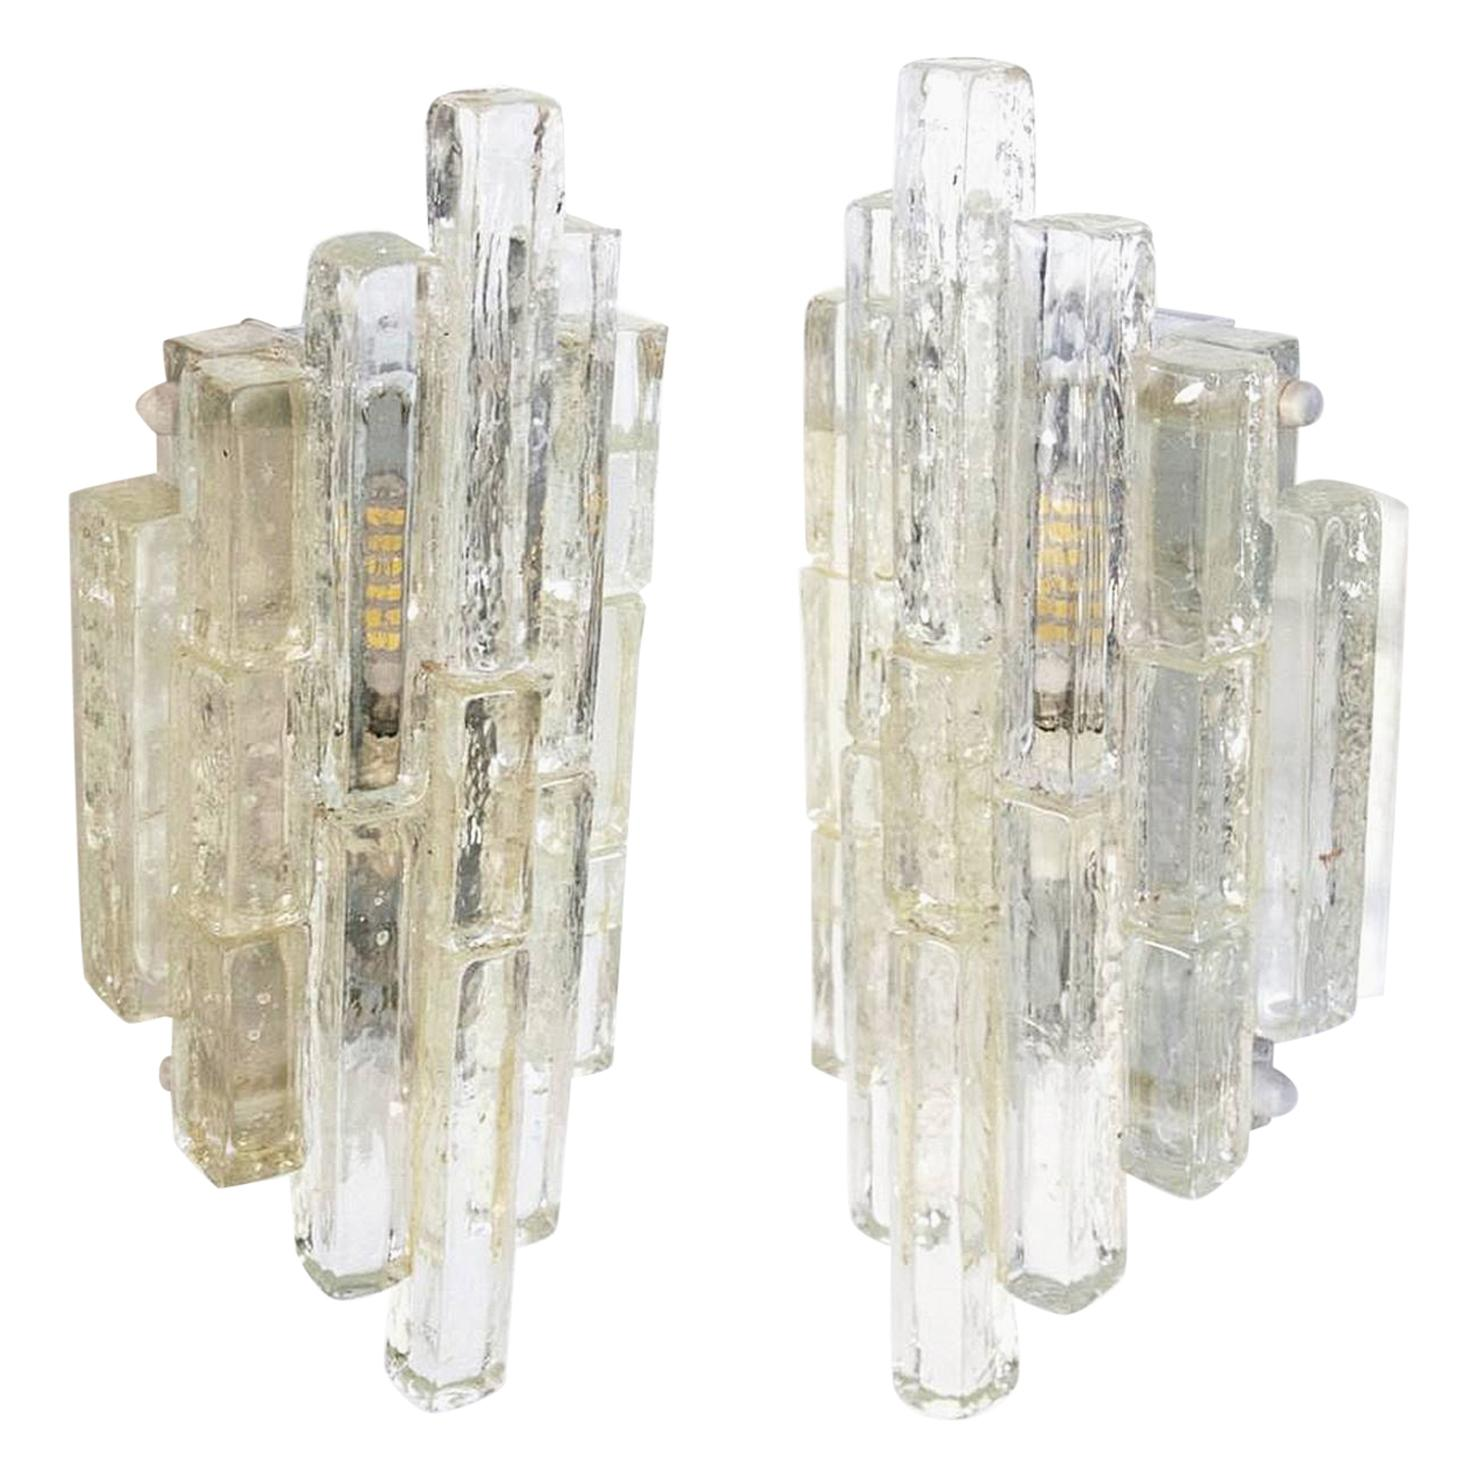 Poliarte Wall Sconces in Clear Glass, Italy, 1960s